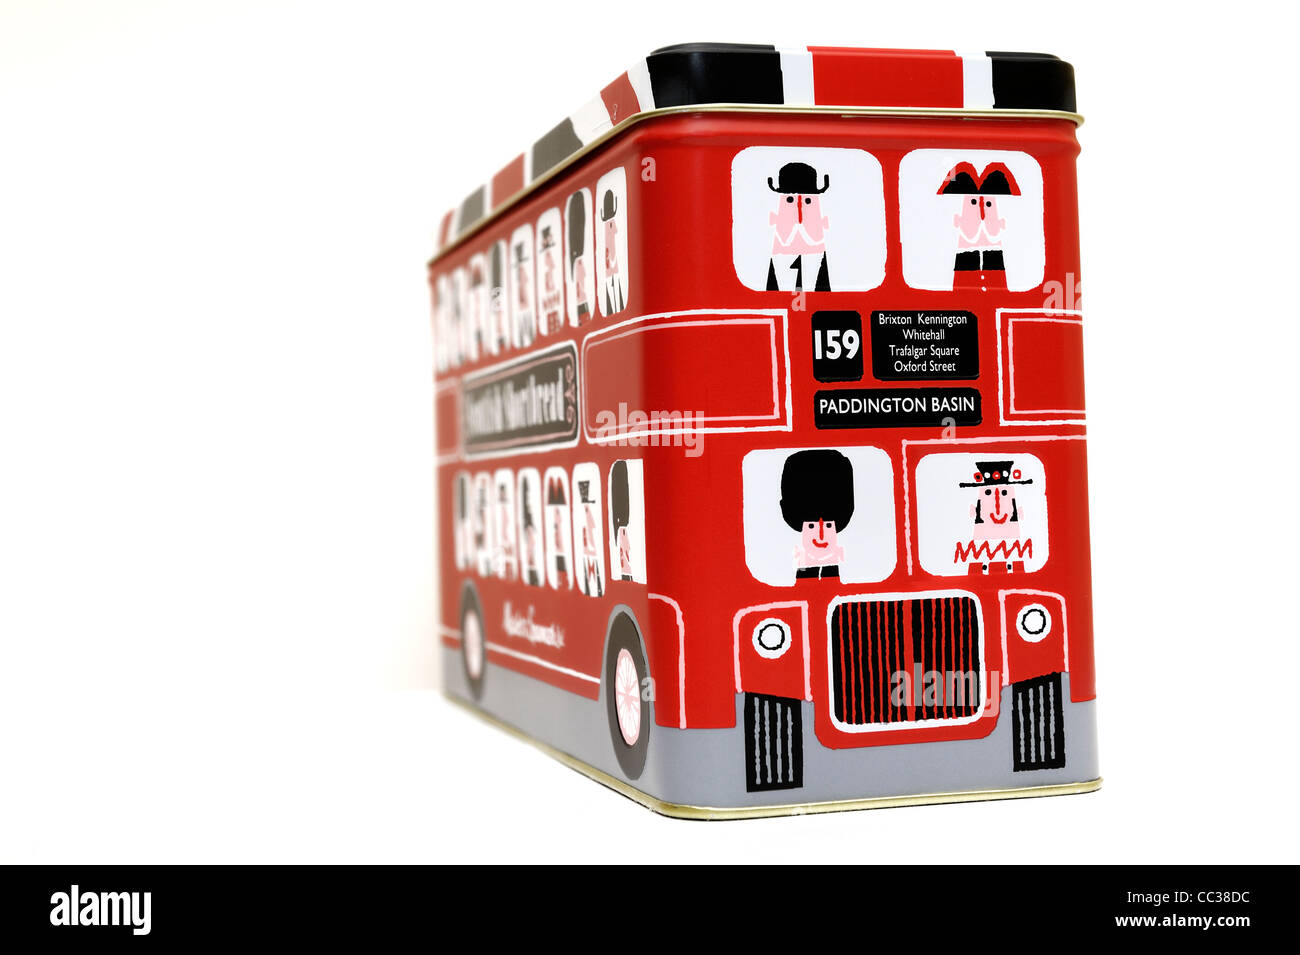 tin of marks and spencers scottish shortbread in the format of a red london bus england uk - Stock Image